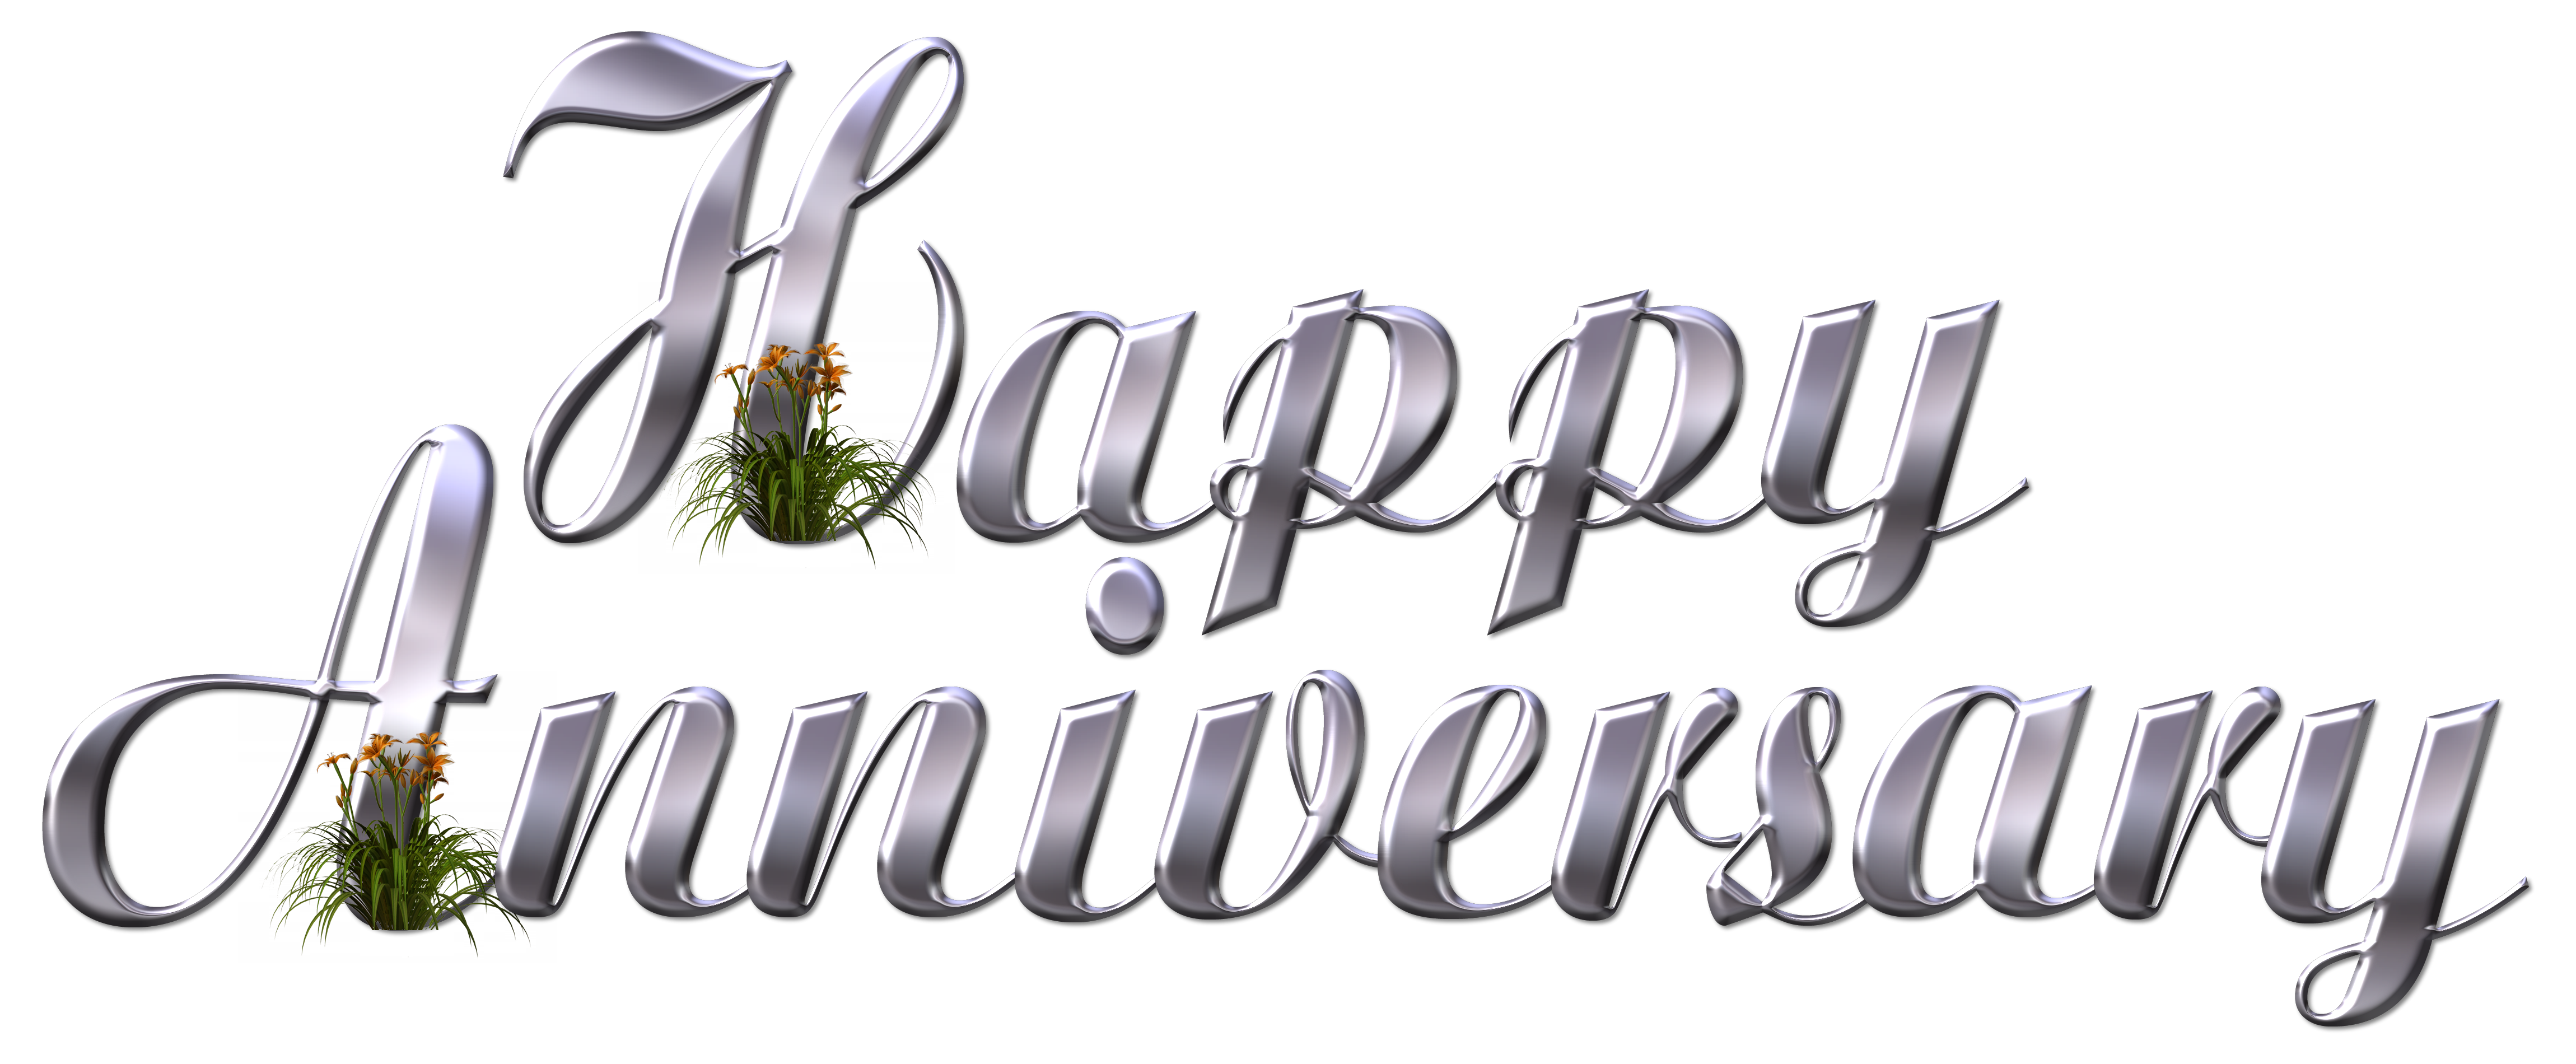 Happy anniversary clip art free picture Wedding anniversary Wish Birthday Clip art - Business Anniversary ... picture